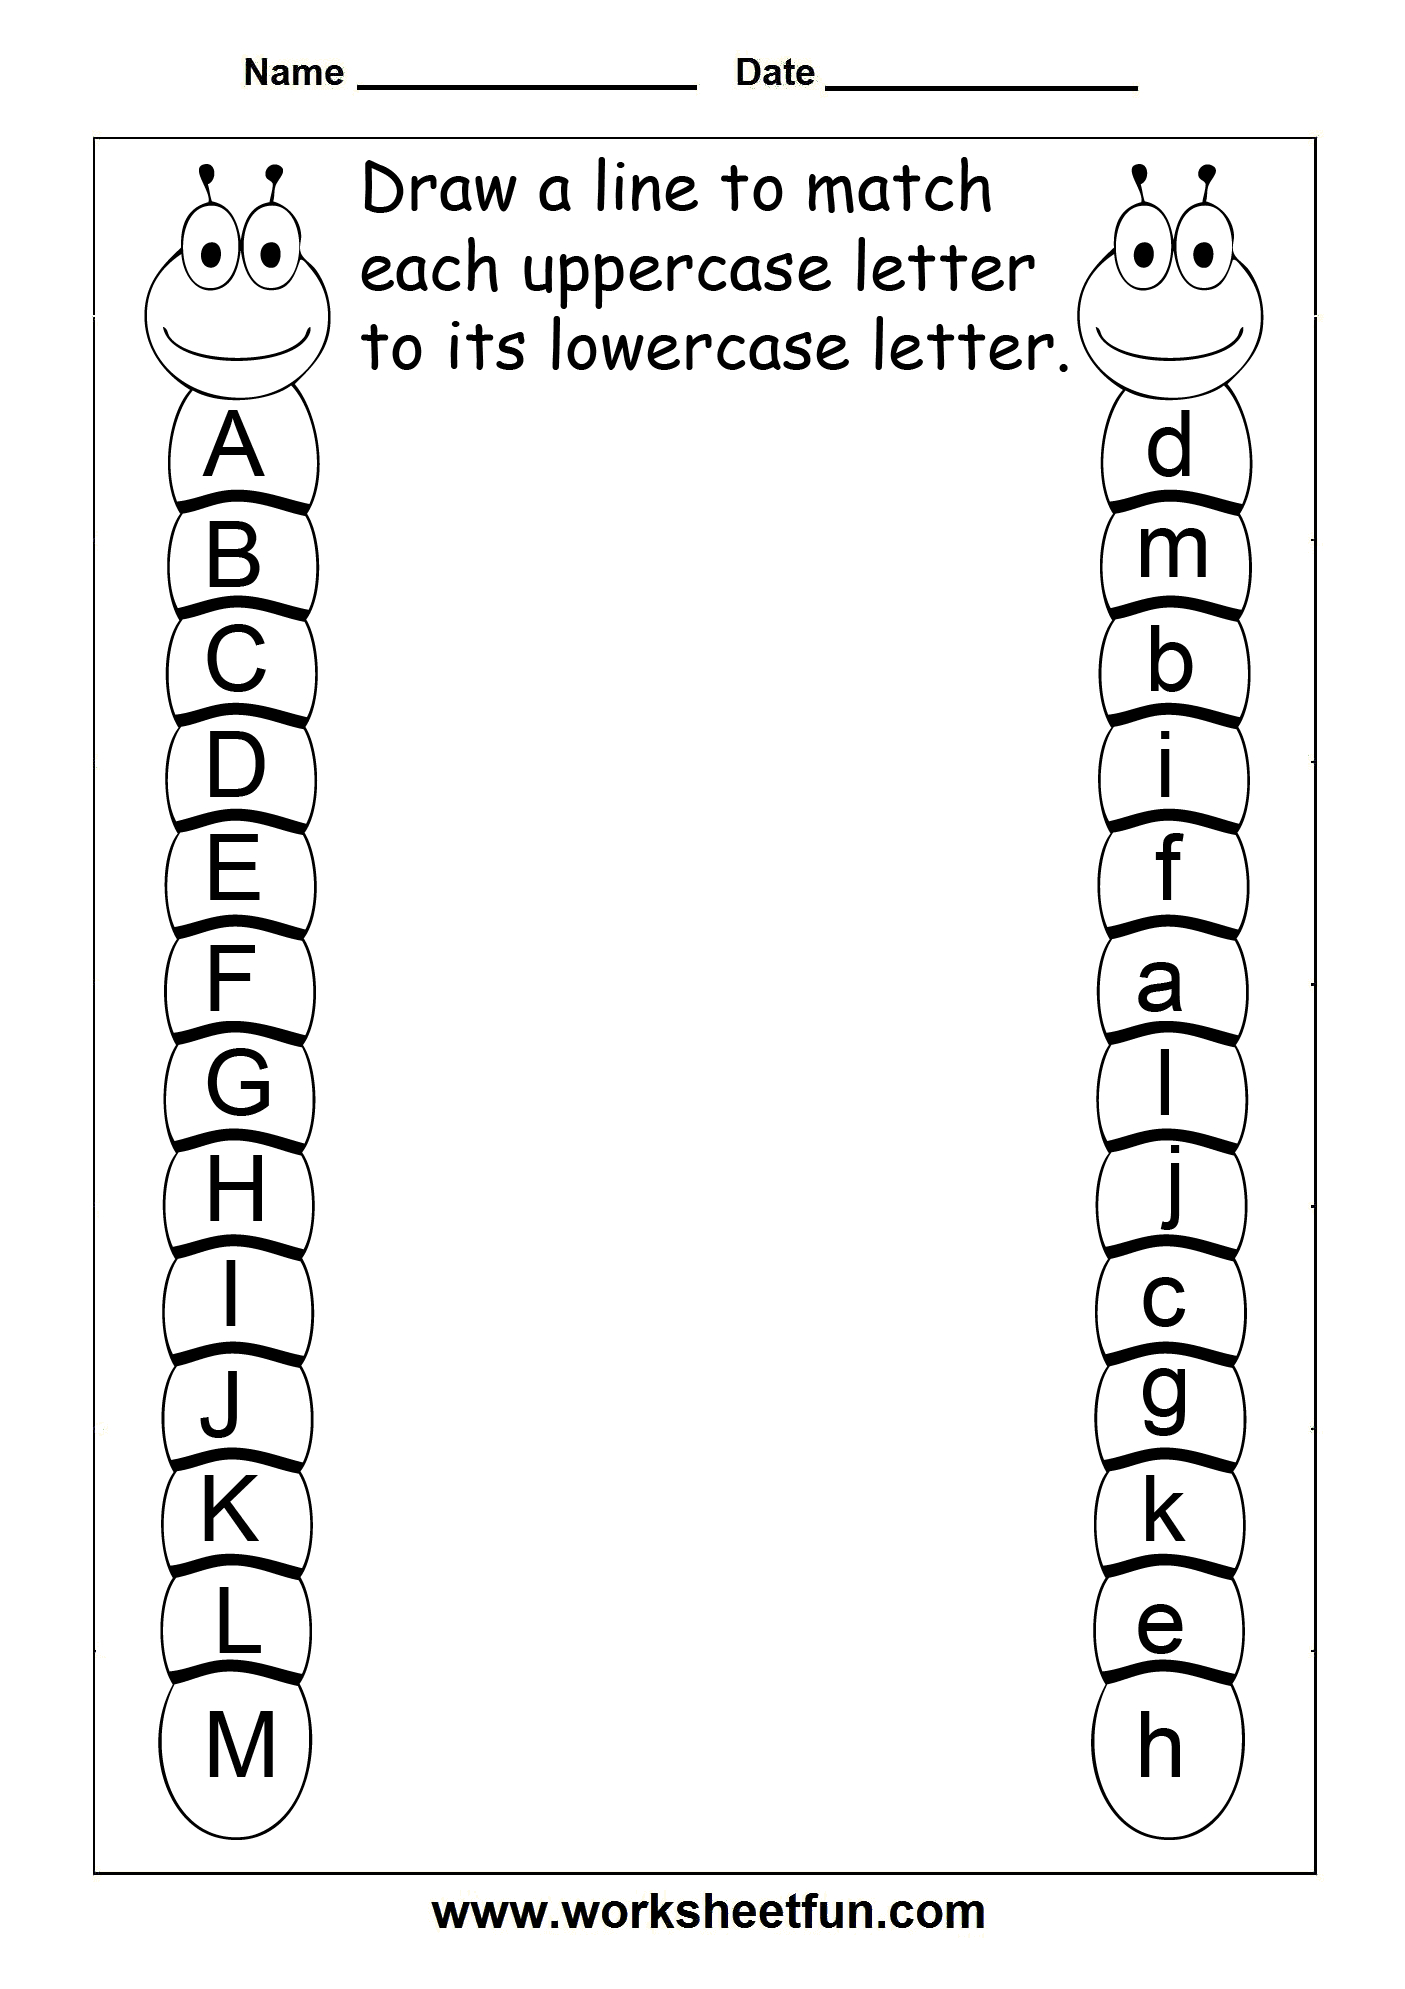 A Website With A Crap Ton Of Awesome School Work Sheets. Rhyas | Teacher Websites Free Printable Worksheets